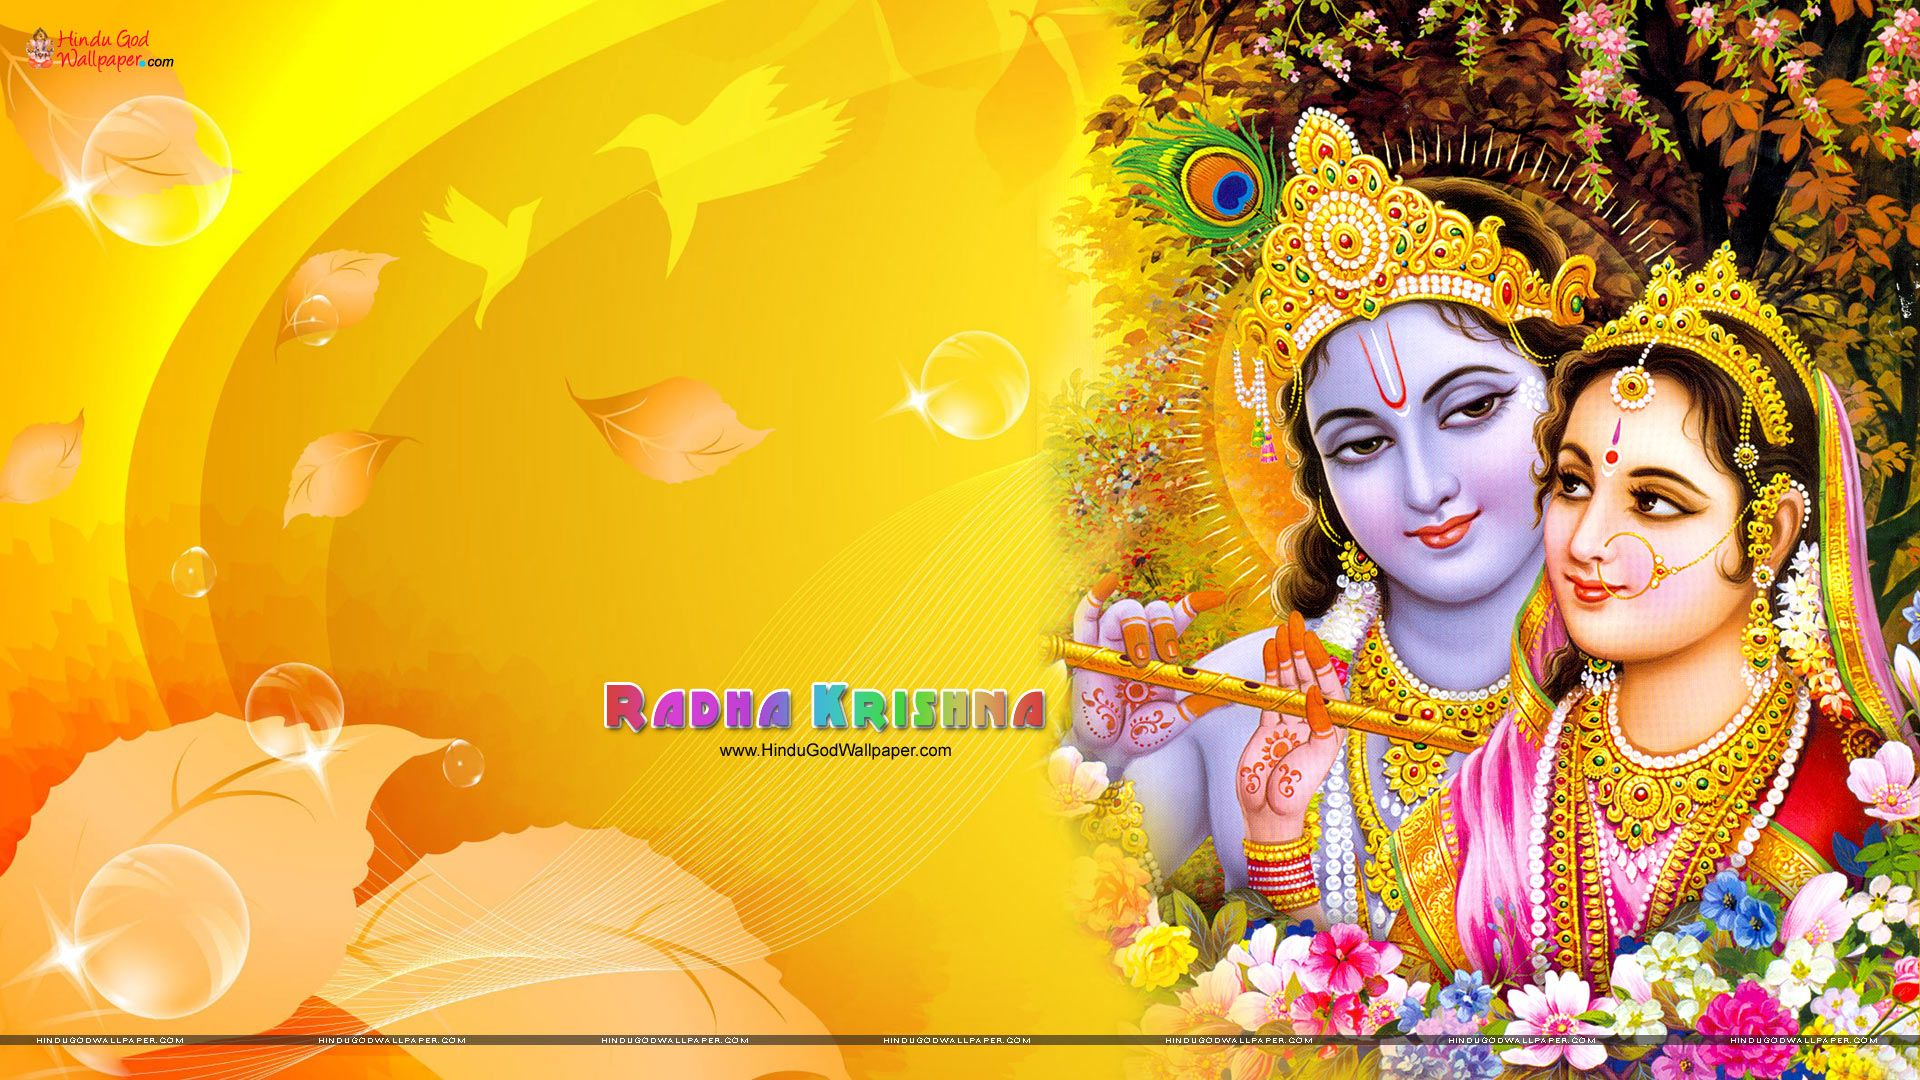 Radha Krishna Wallpaper Hd Full Size Download Radha Krishna Wallpaper Krishna Wallpaper Krishna